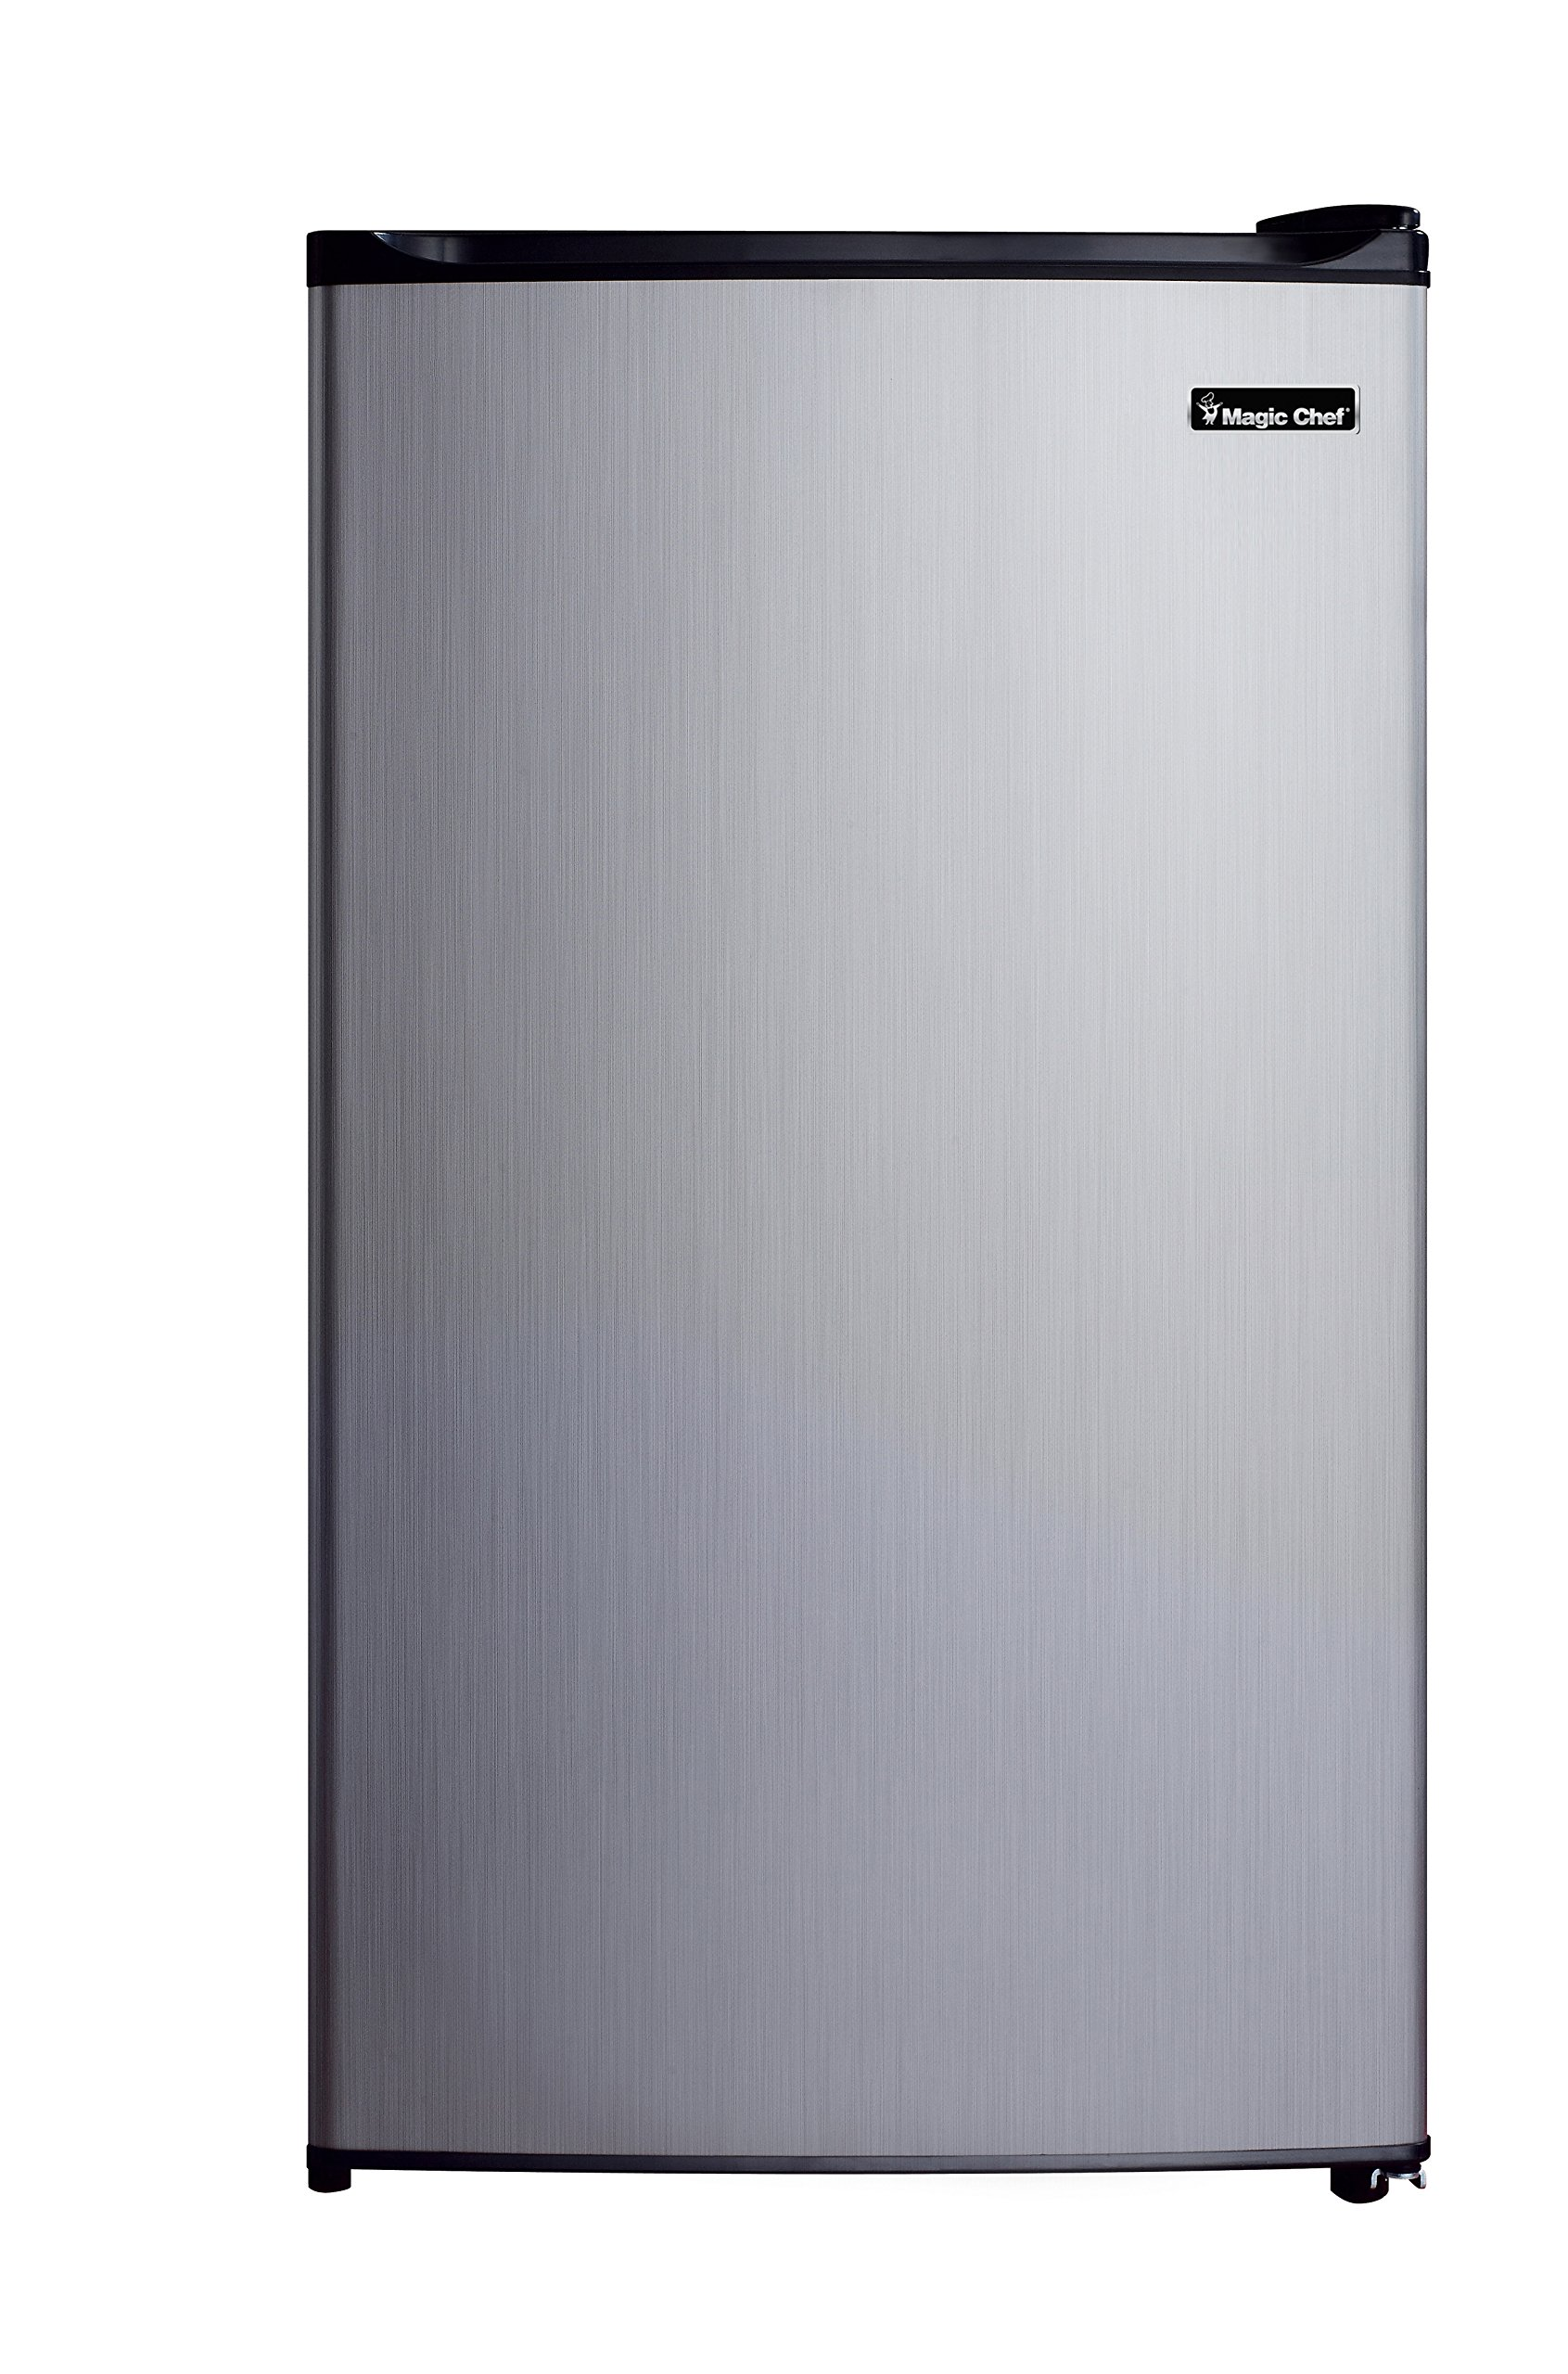 Magic Chef MCBR350S2 Refrigerator, 3.5 cu. ft., Stainless Look